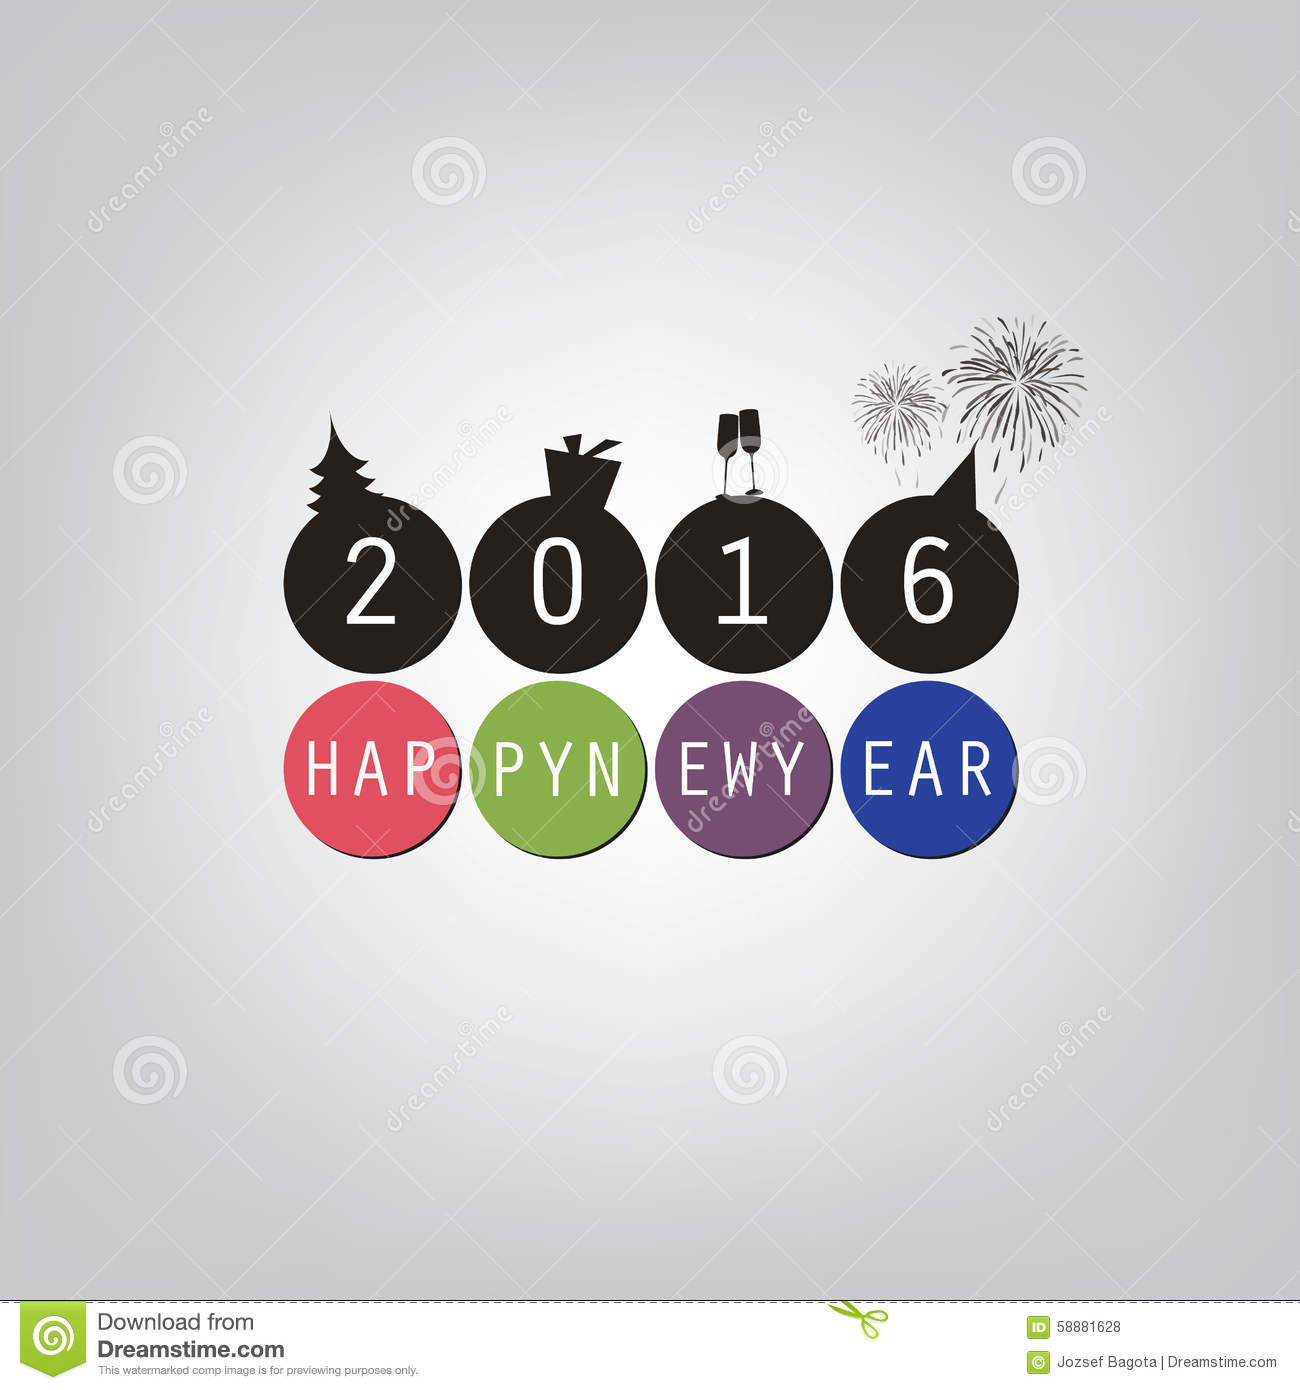 best wishes modern simple minimal happy new year card or cover background template 2016